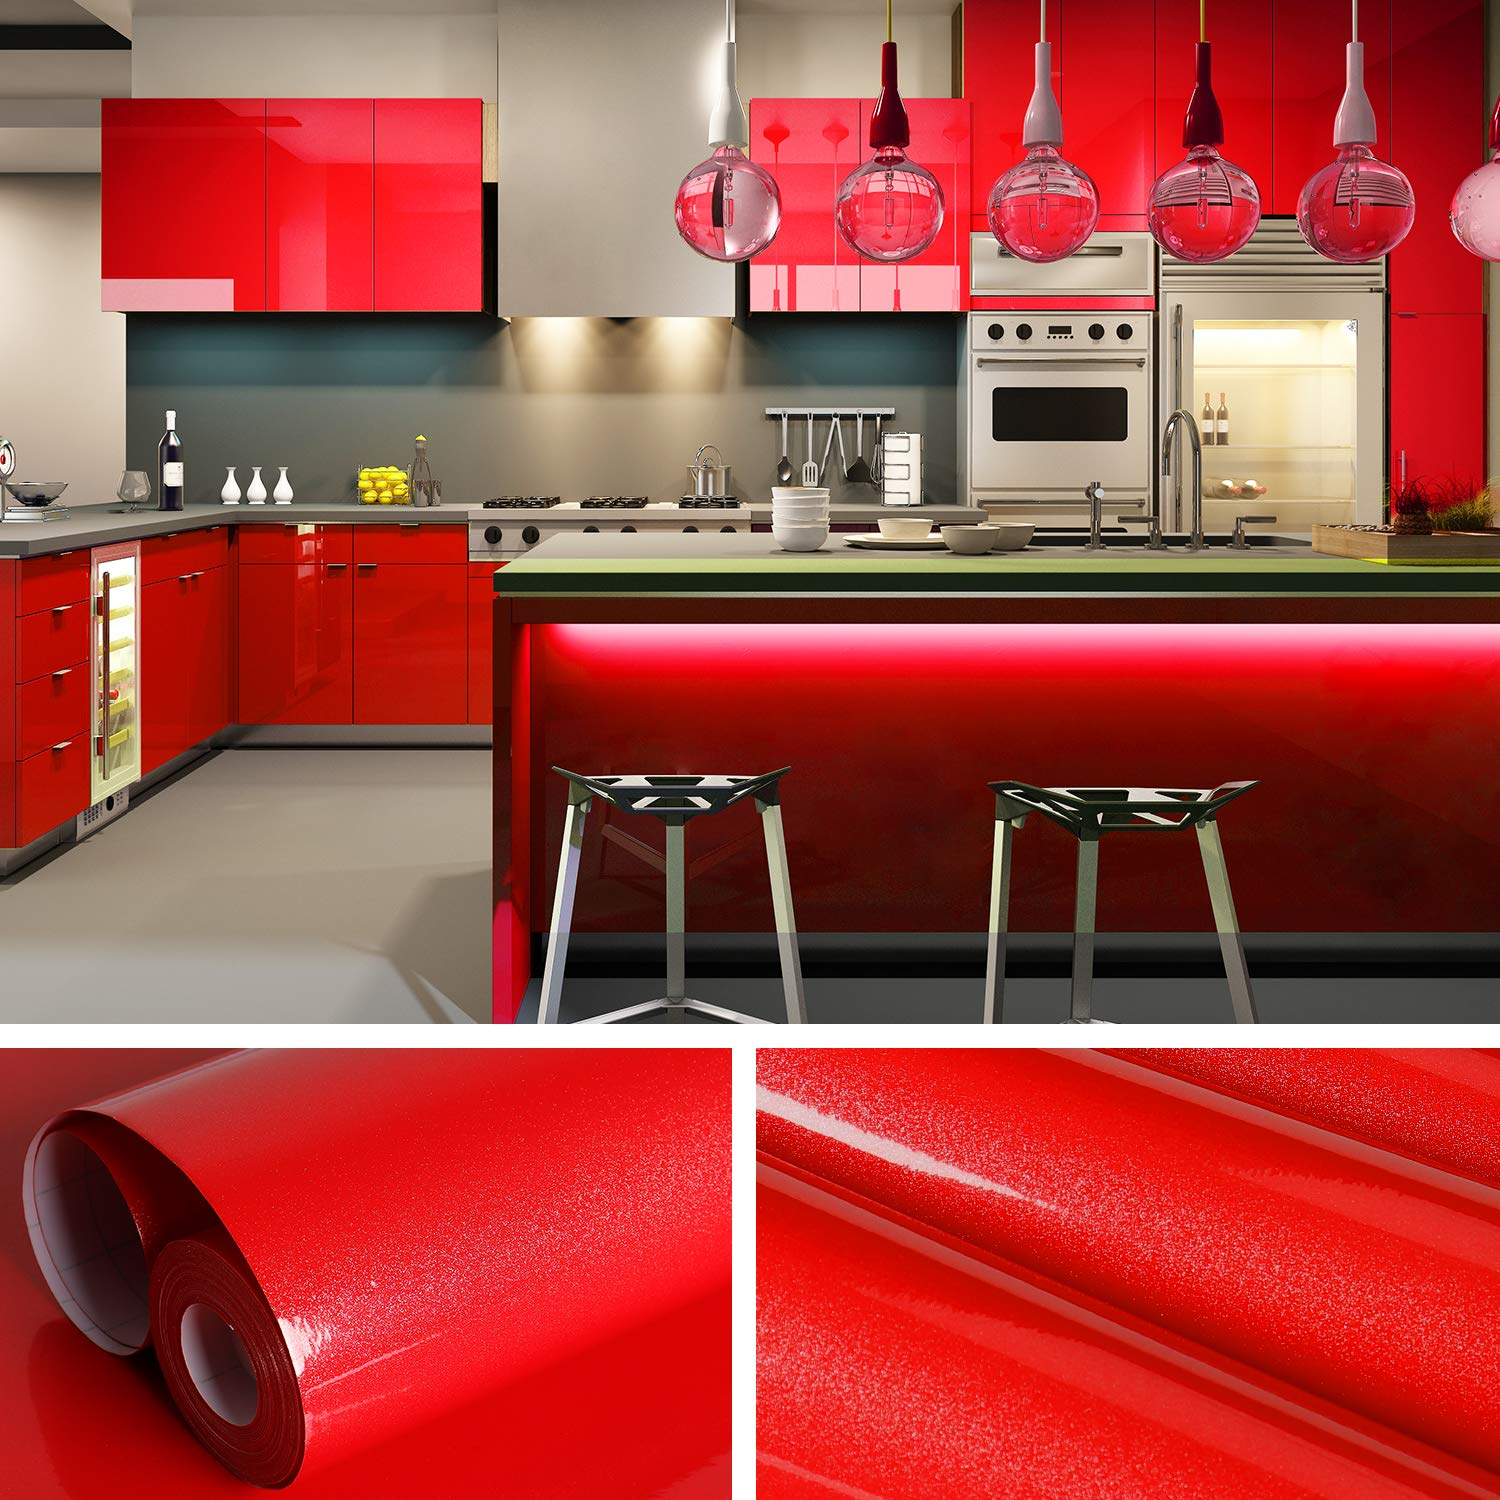 VEELIKE 15.74 × 118.11inches Red Wallpaper Peel and Stick Removable Waterproof Vinyl Self Adhesive Contact Paper for Bathroom Bedroom Living Room Home Decor Furniture Renovation